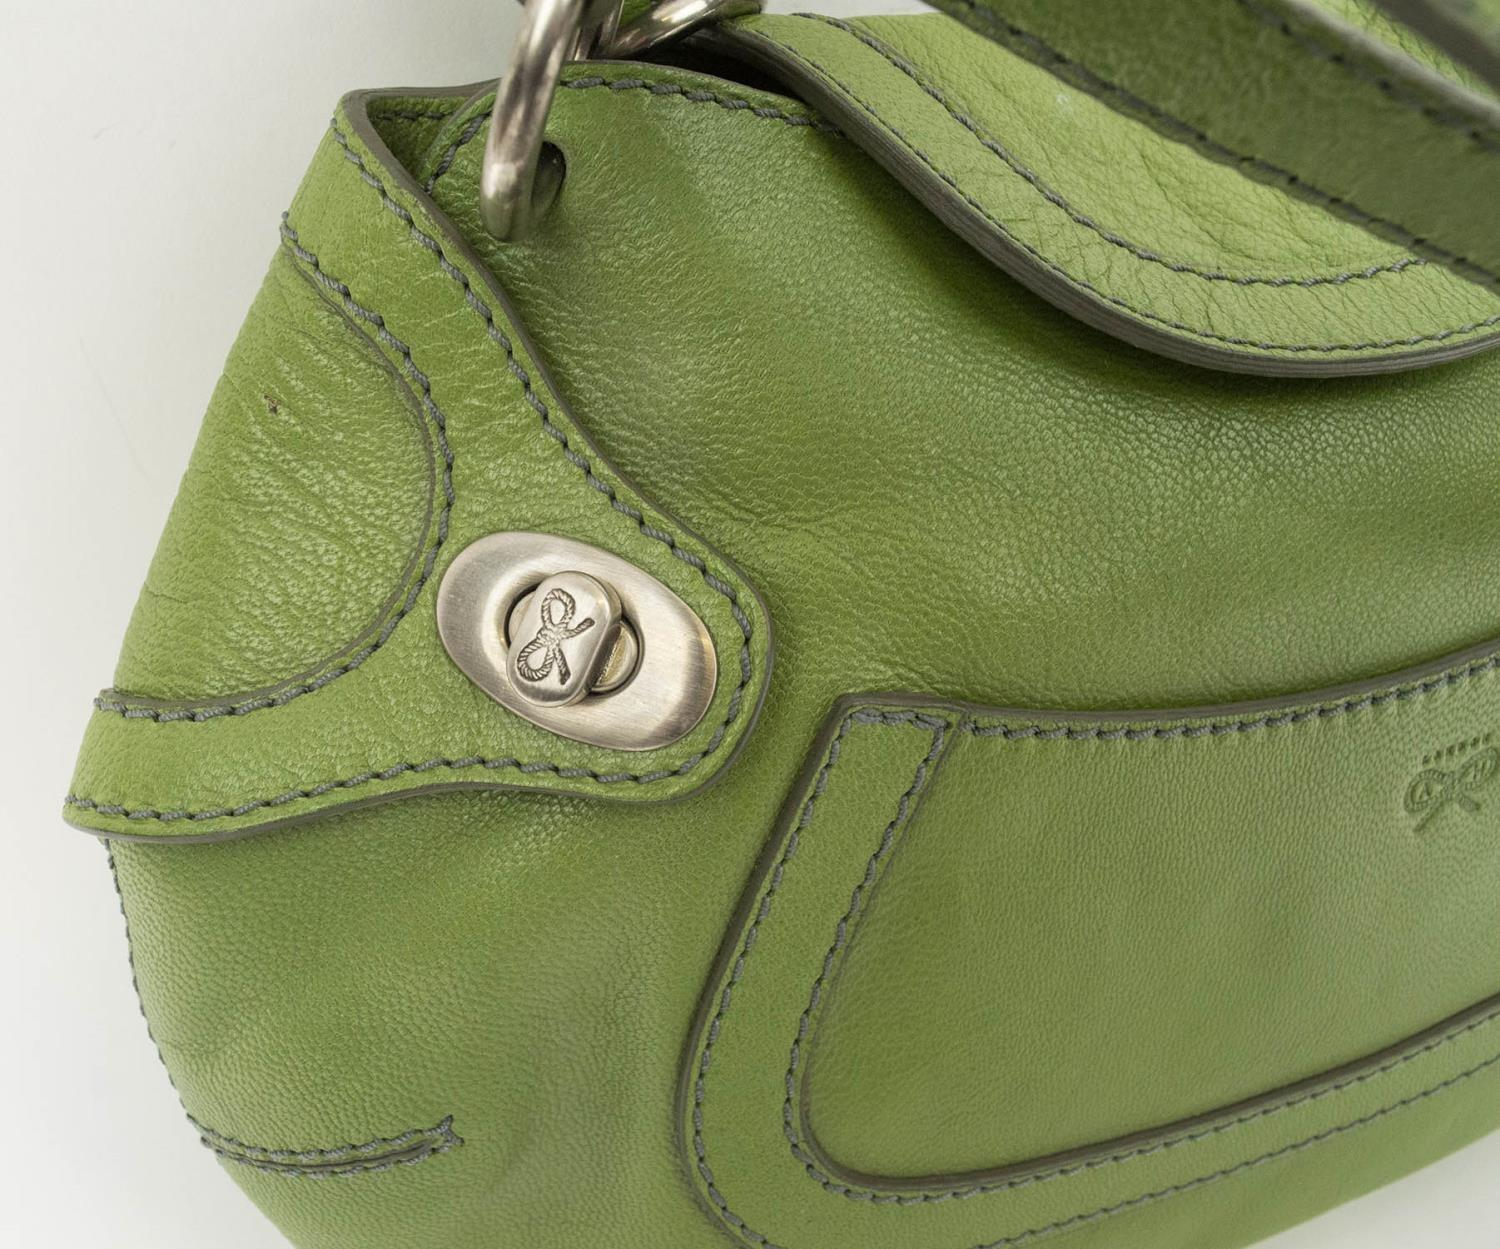 ANYA HINDMARCH SHOULDER BAG, leather with contrasting stitching, gun metal hardware, double top - Image 2 of 8